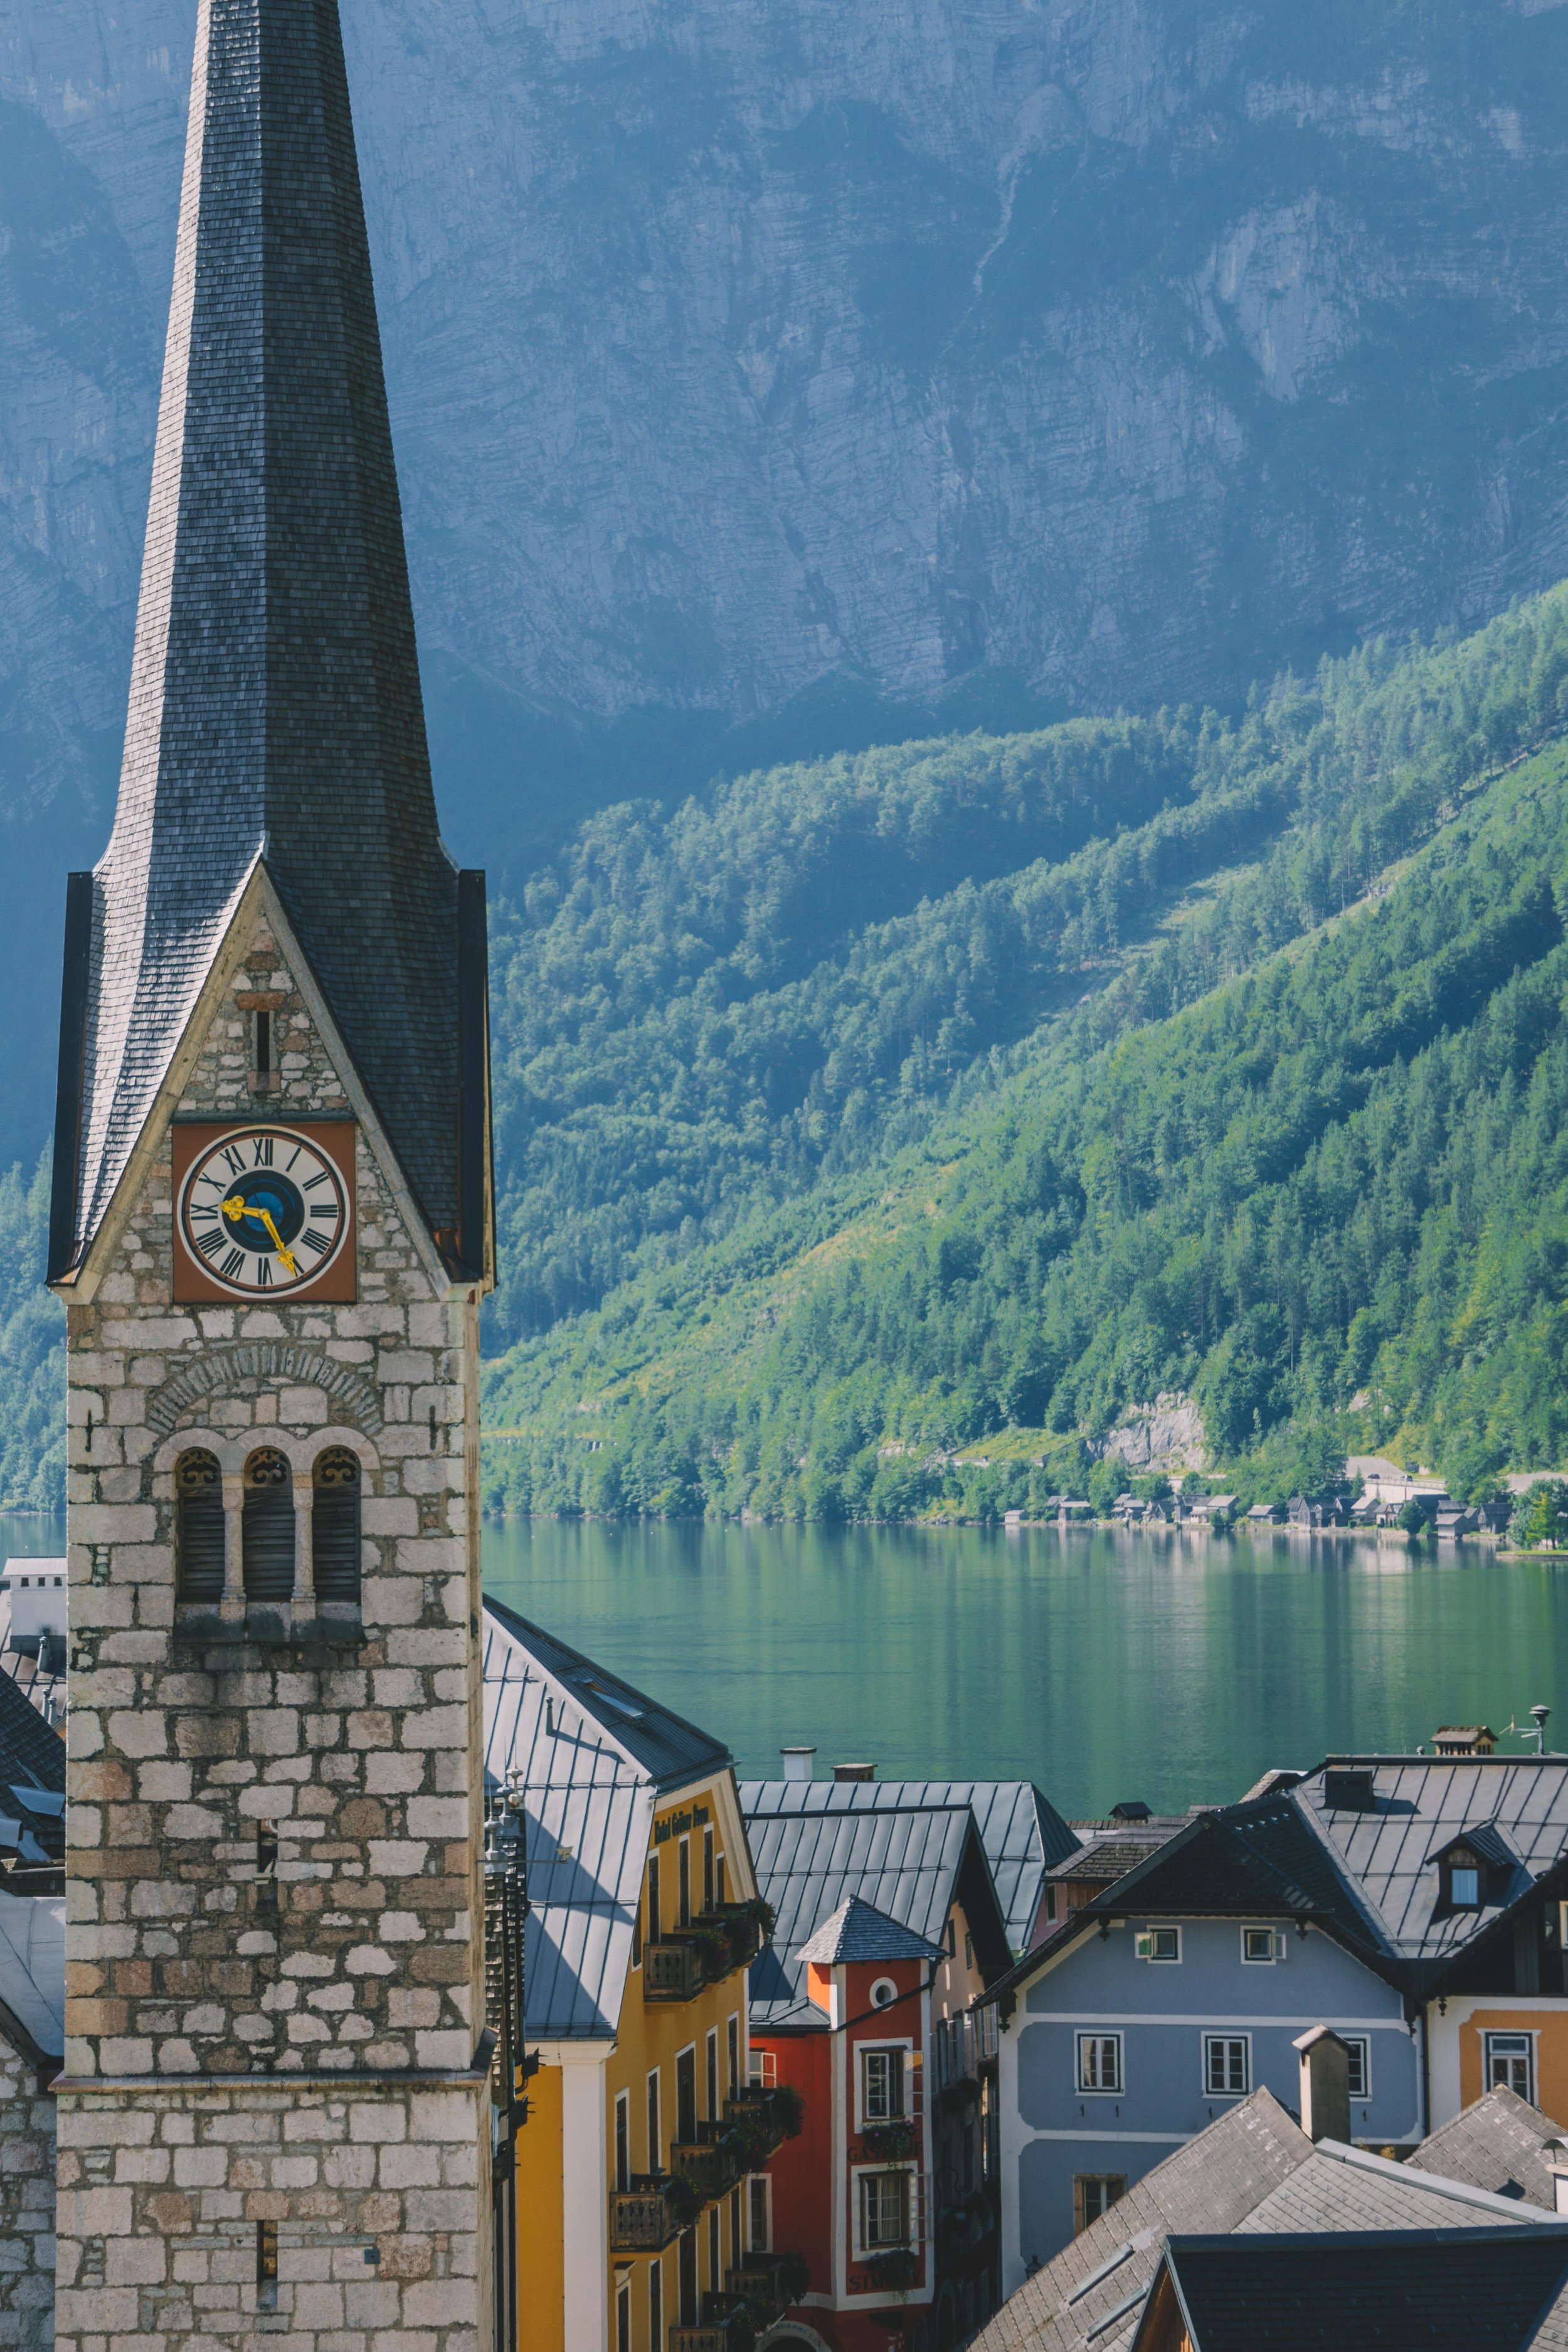 Hallstatt - the most beautiful village in Austria